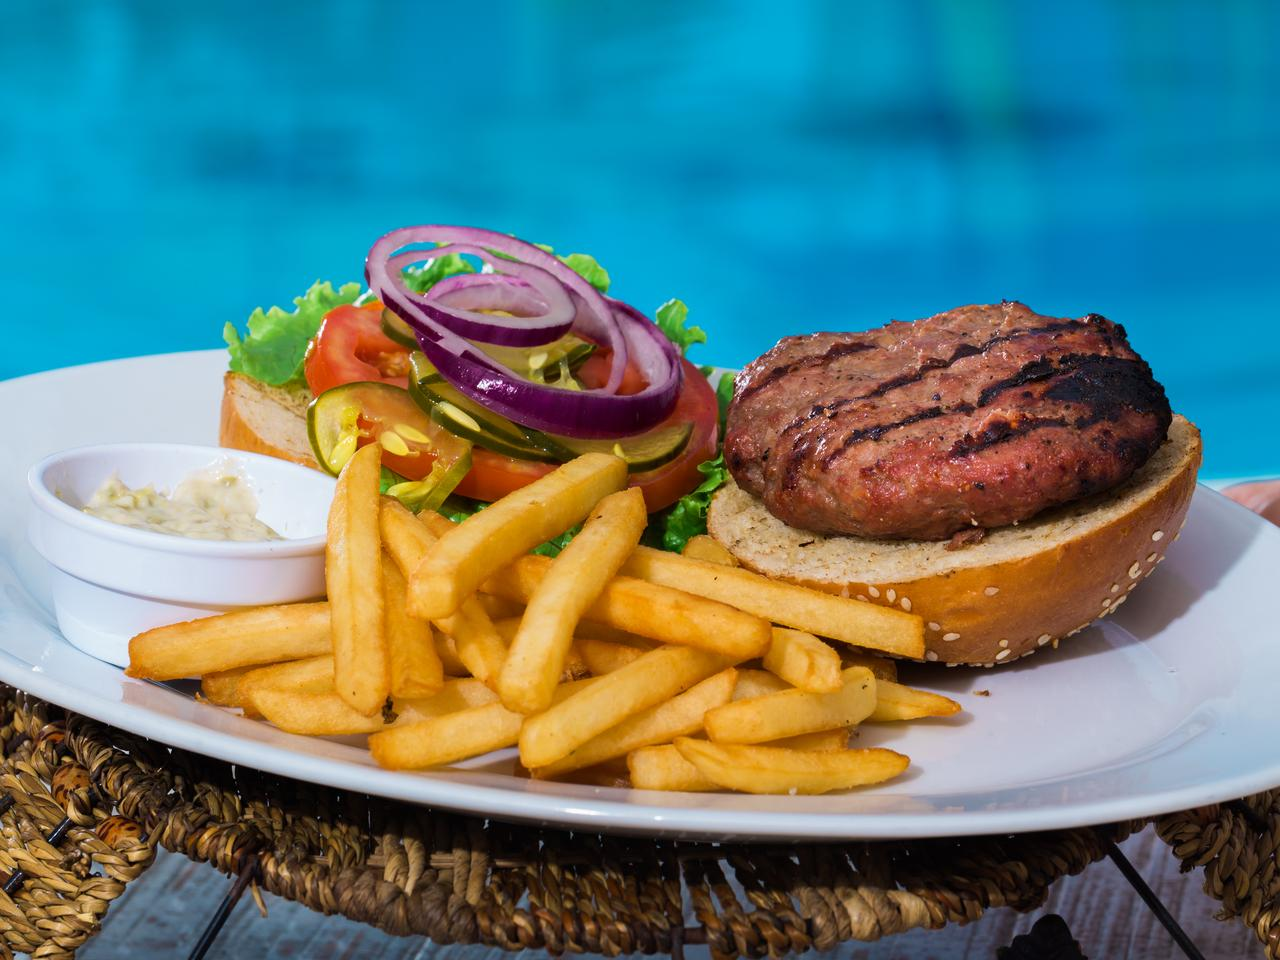 A plate with open hamburger and french fries, over a light blue swiming pool with all ingredients showing